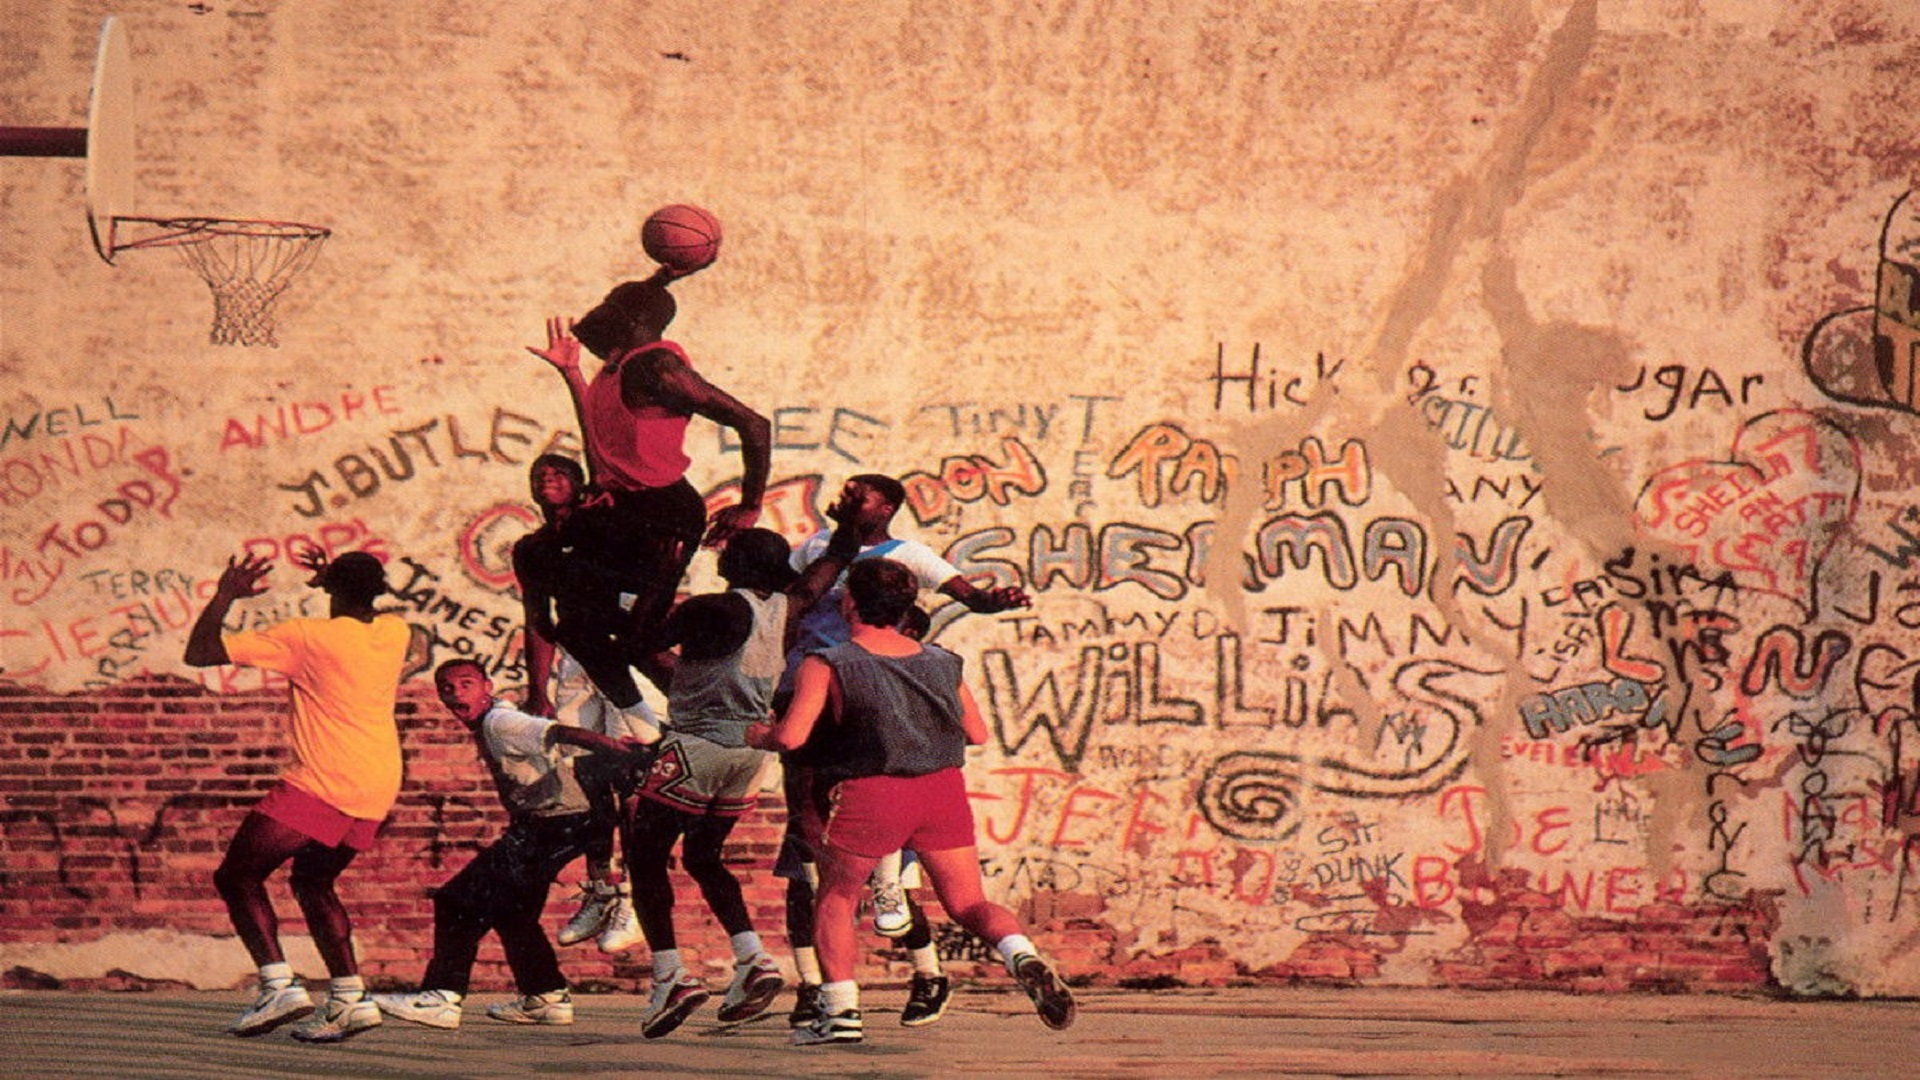 Hd wallpaper justin bieber - Street Basketball Wallpaper Images Amp Pictures Becuo